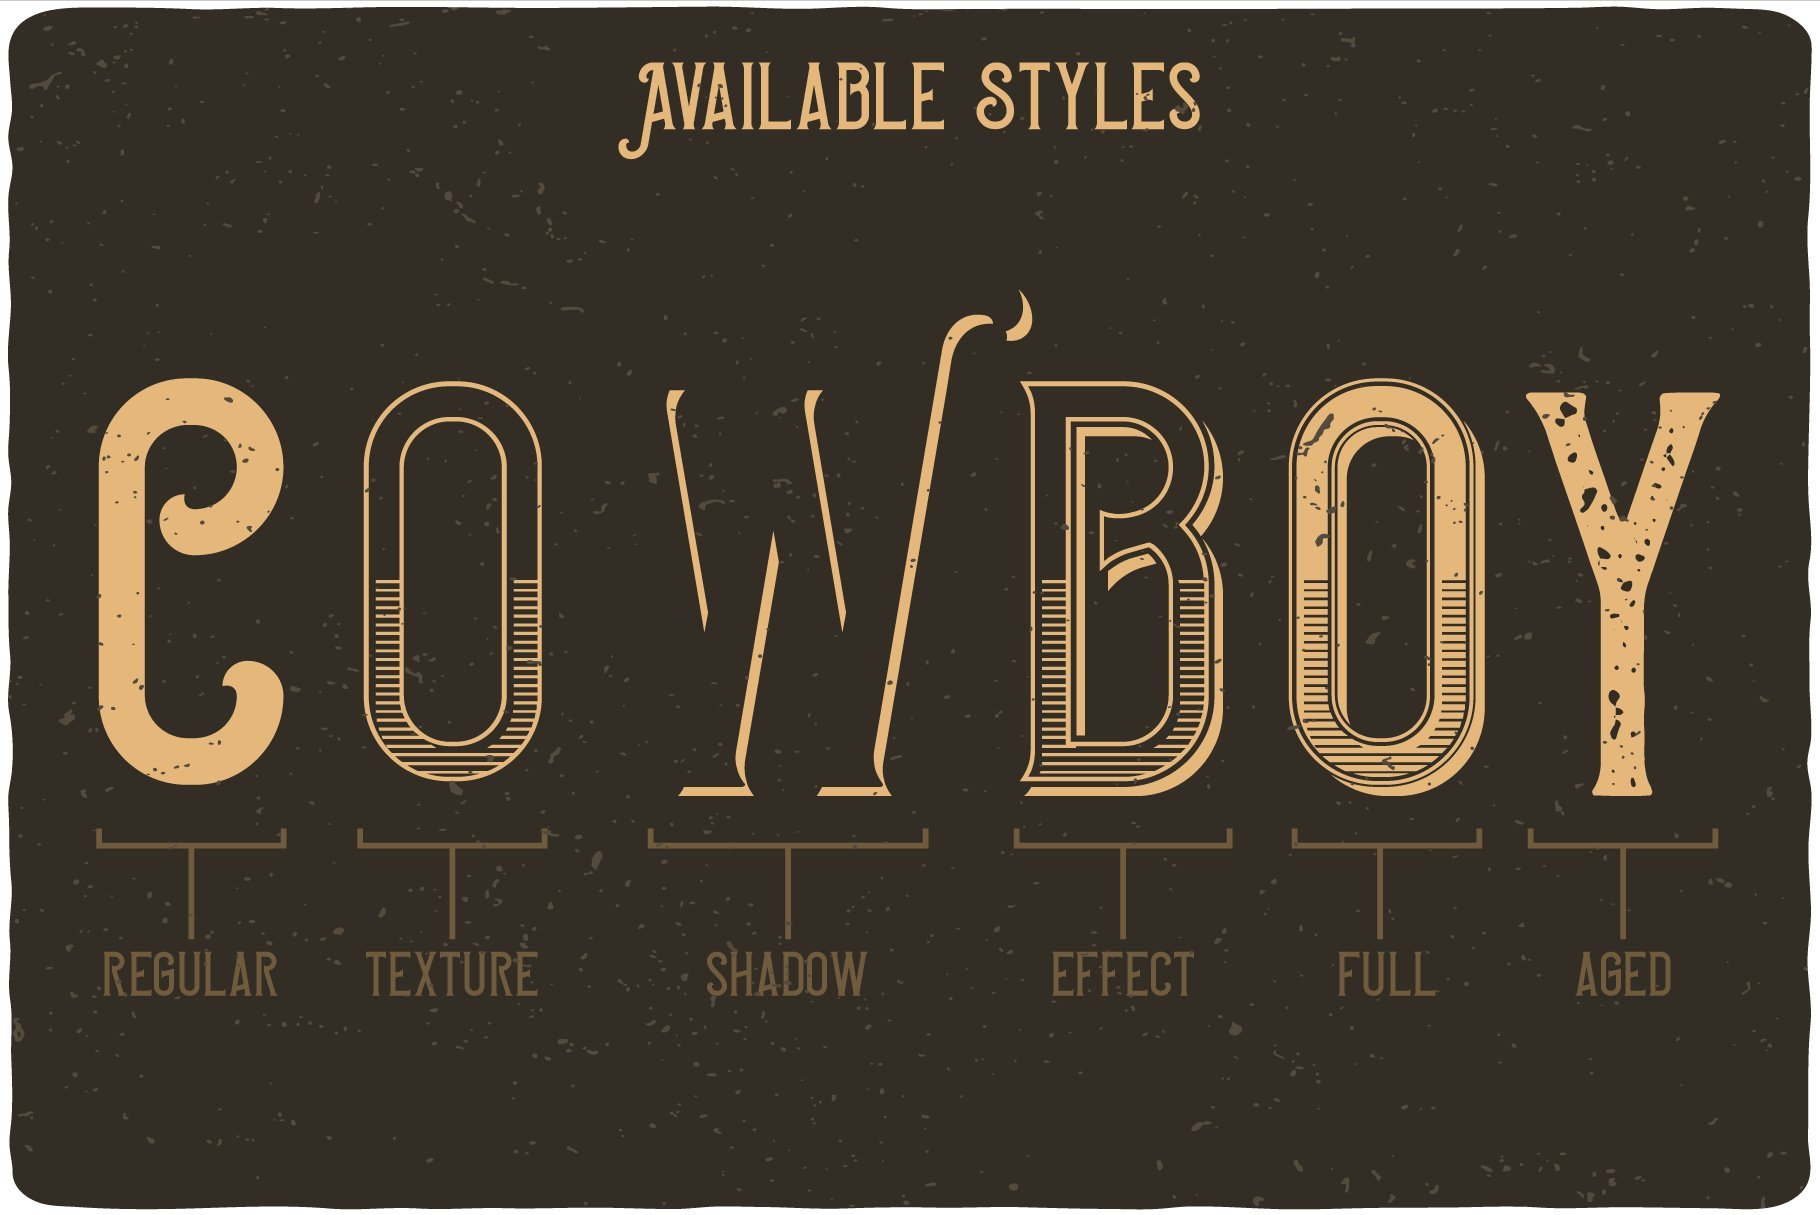 Font styles are shown in gold.